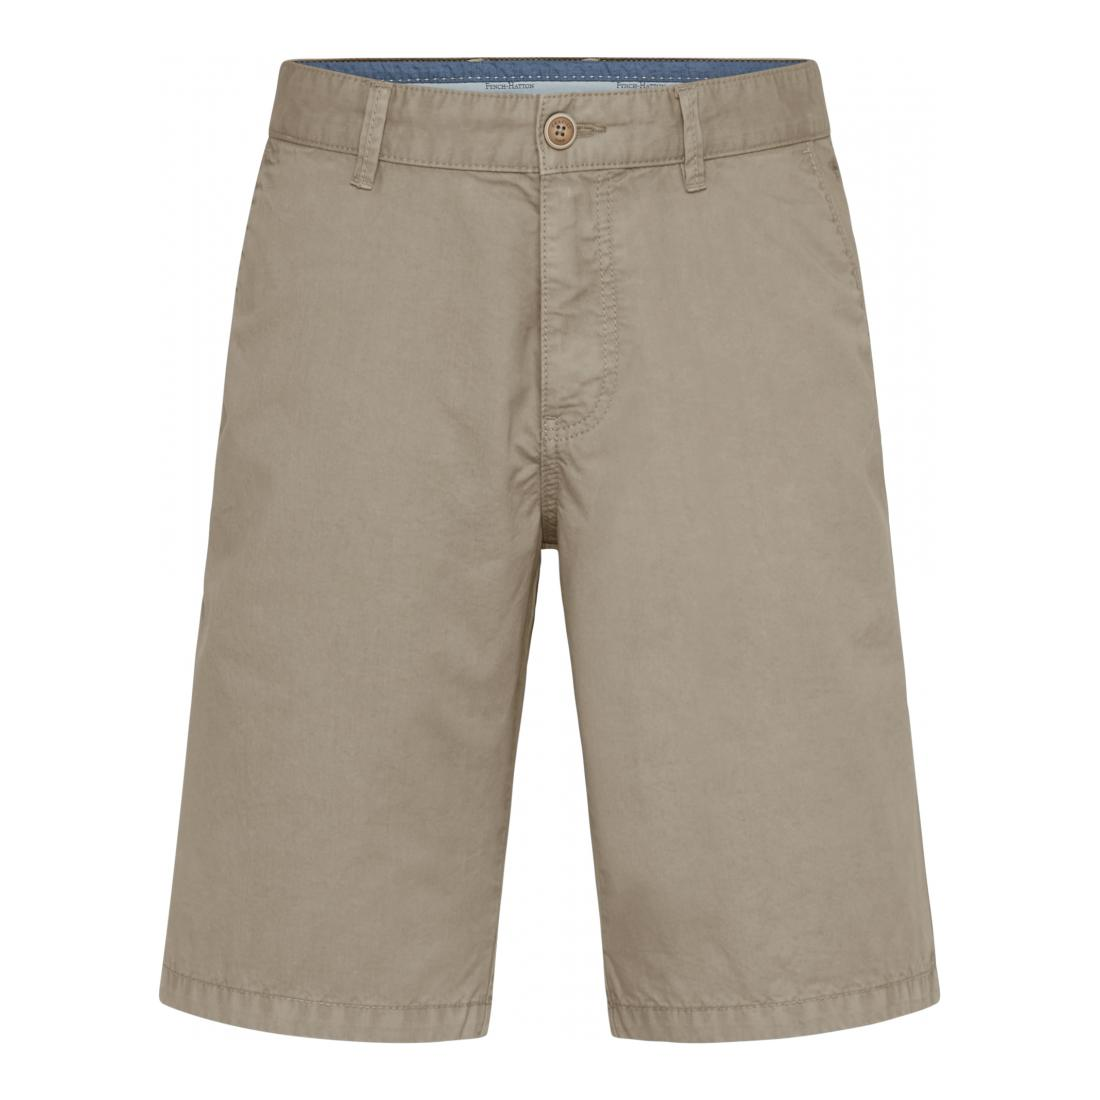 Fynch-Hatton Bermuda/Shorts Herren Shorts, Cotton, Garment D